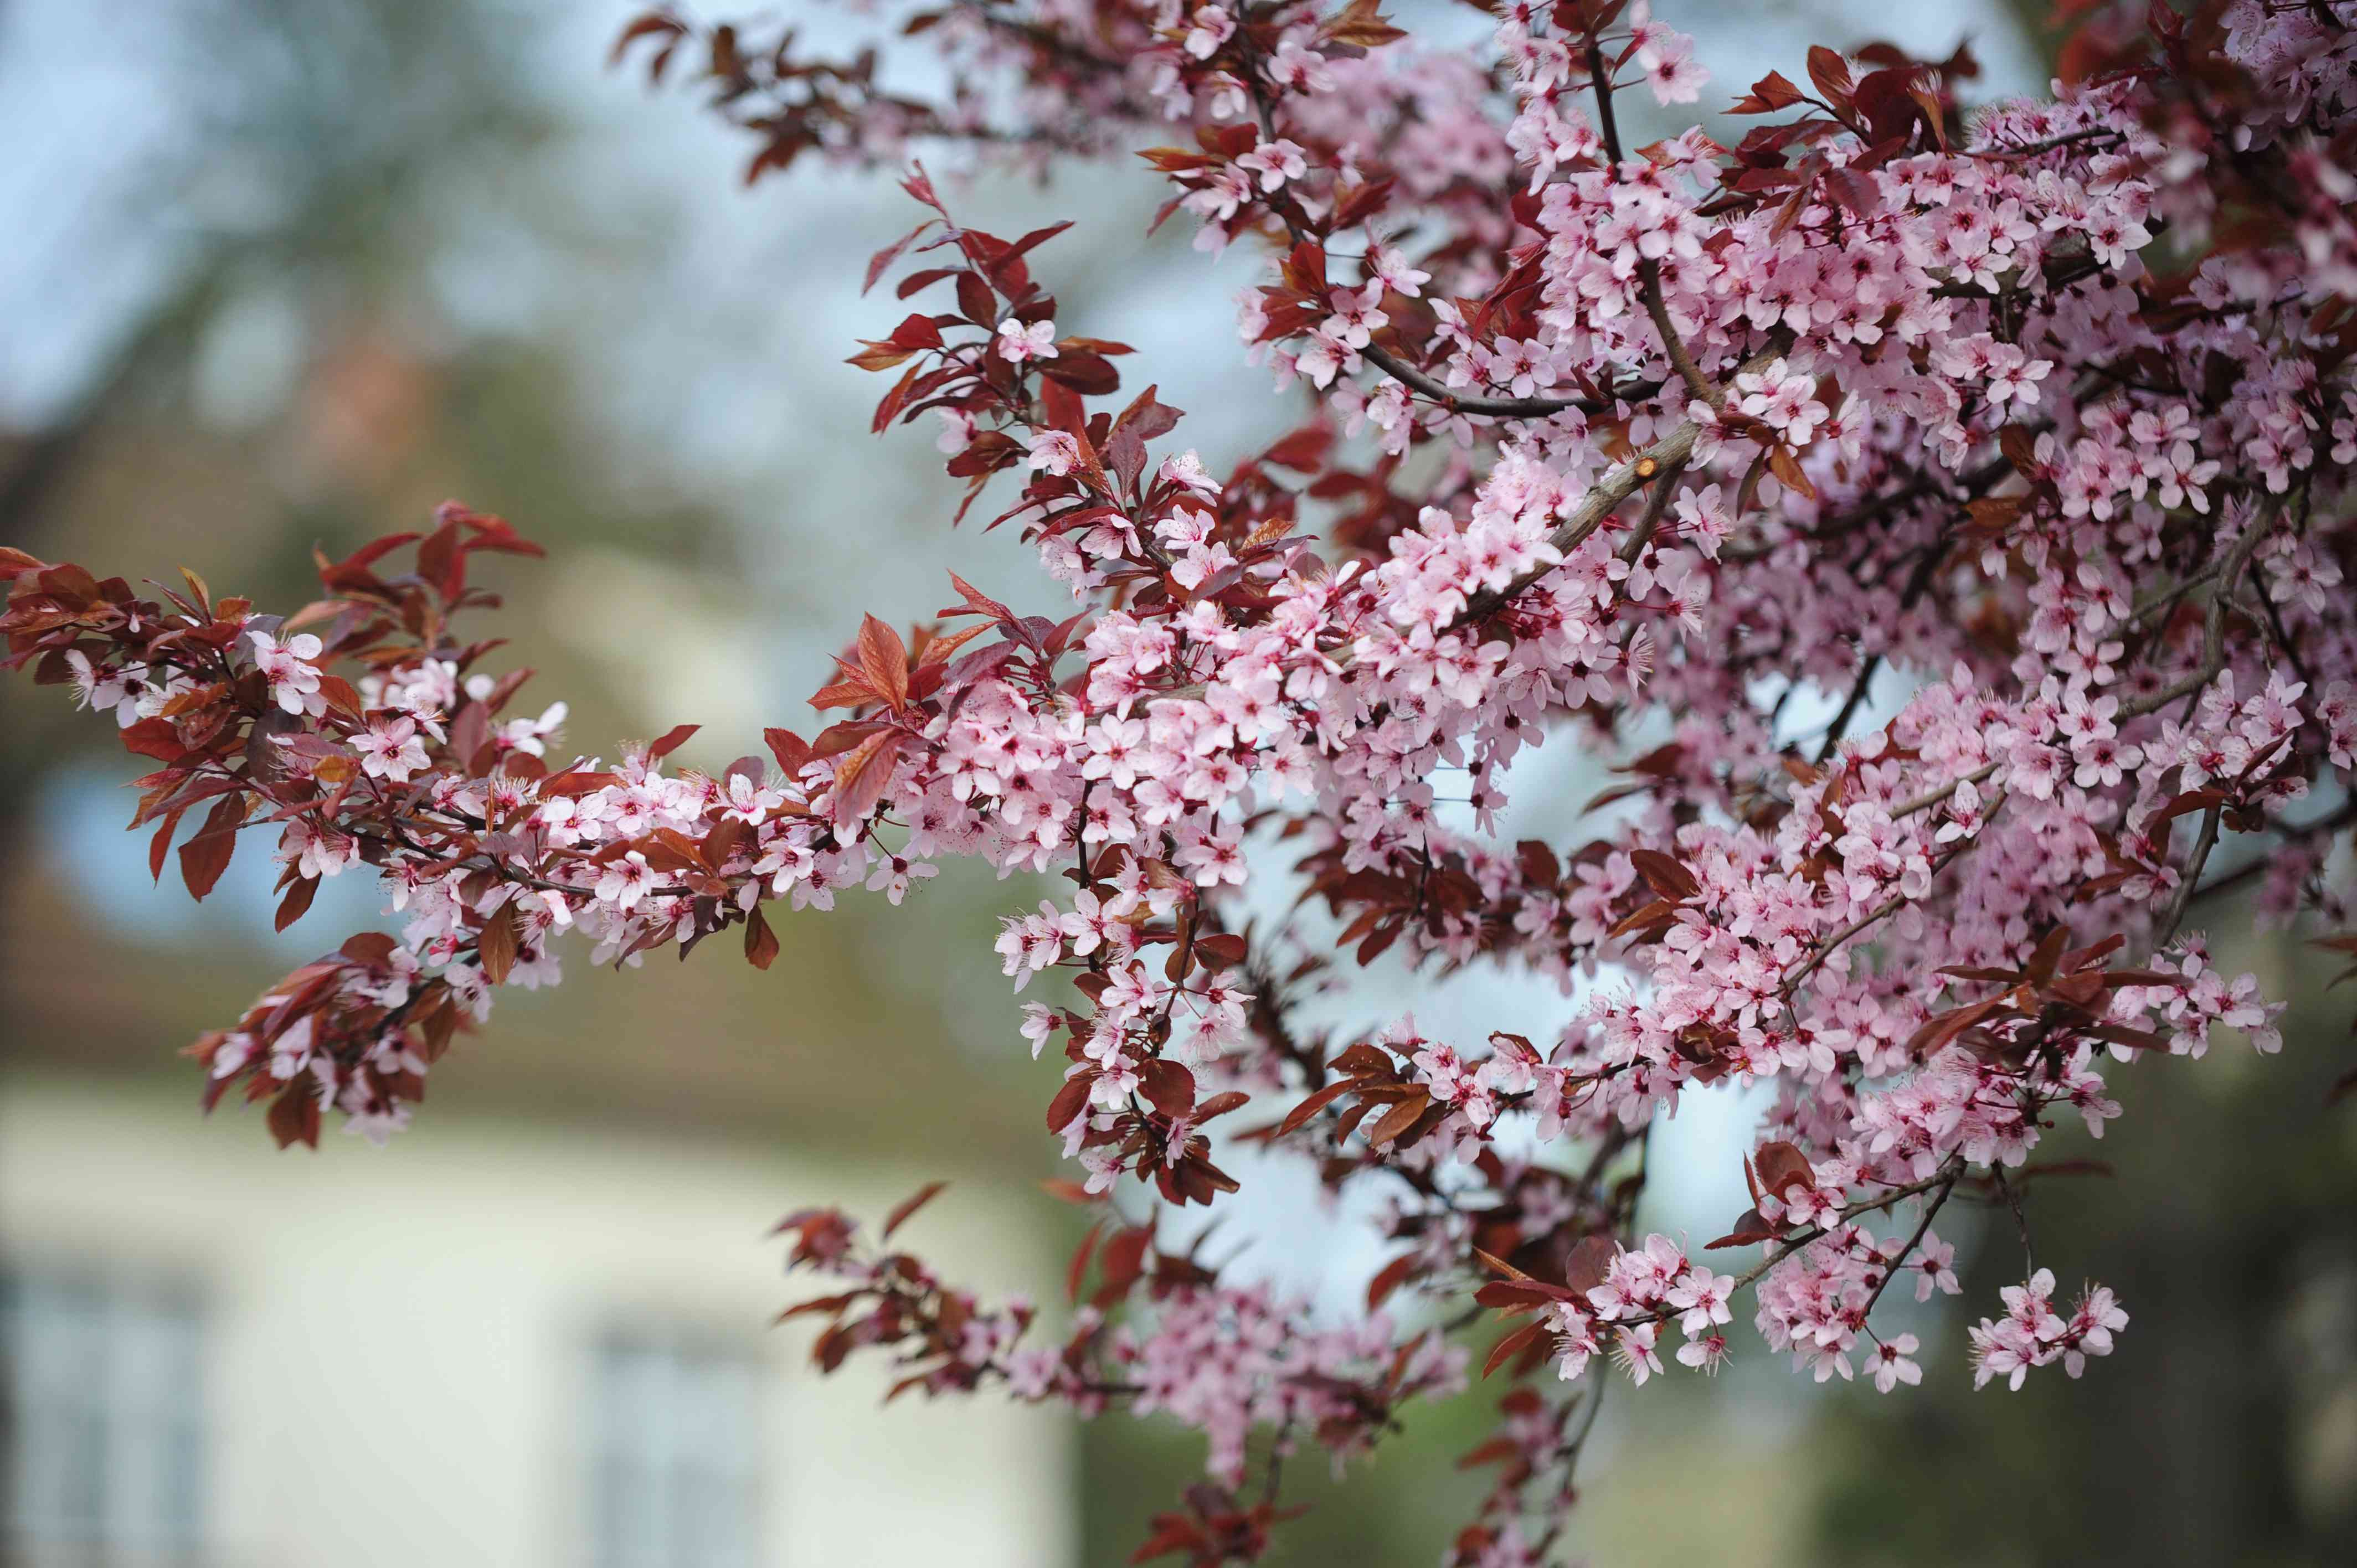 Purple leaf sand cherry tree branch with small pink flowers and brown leaves